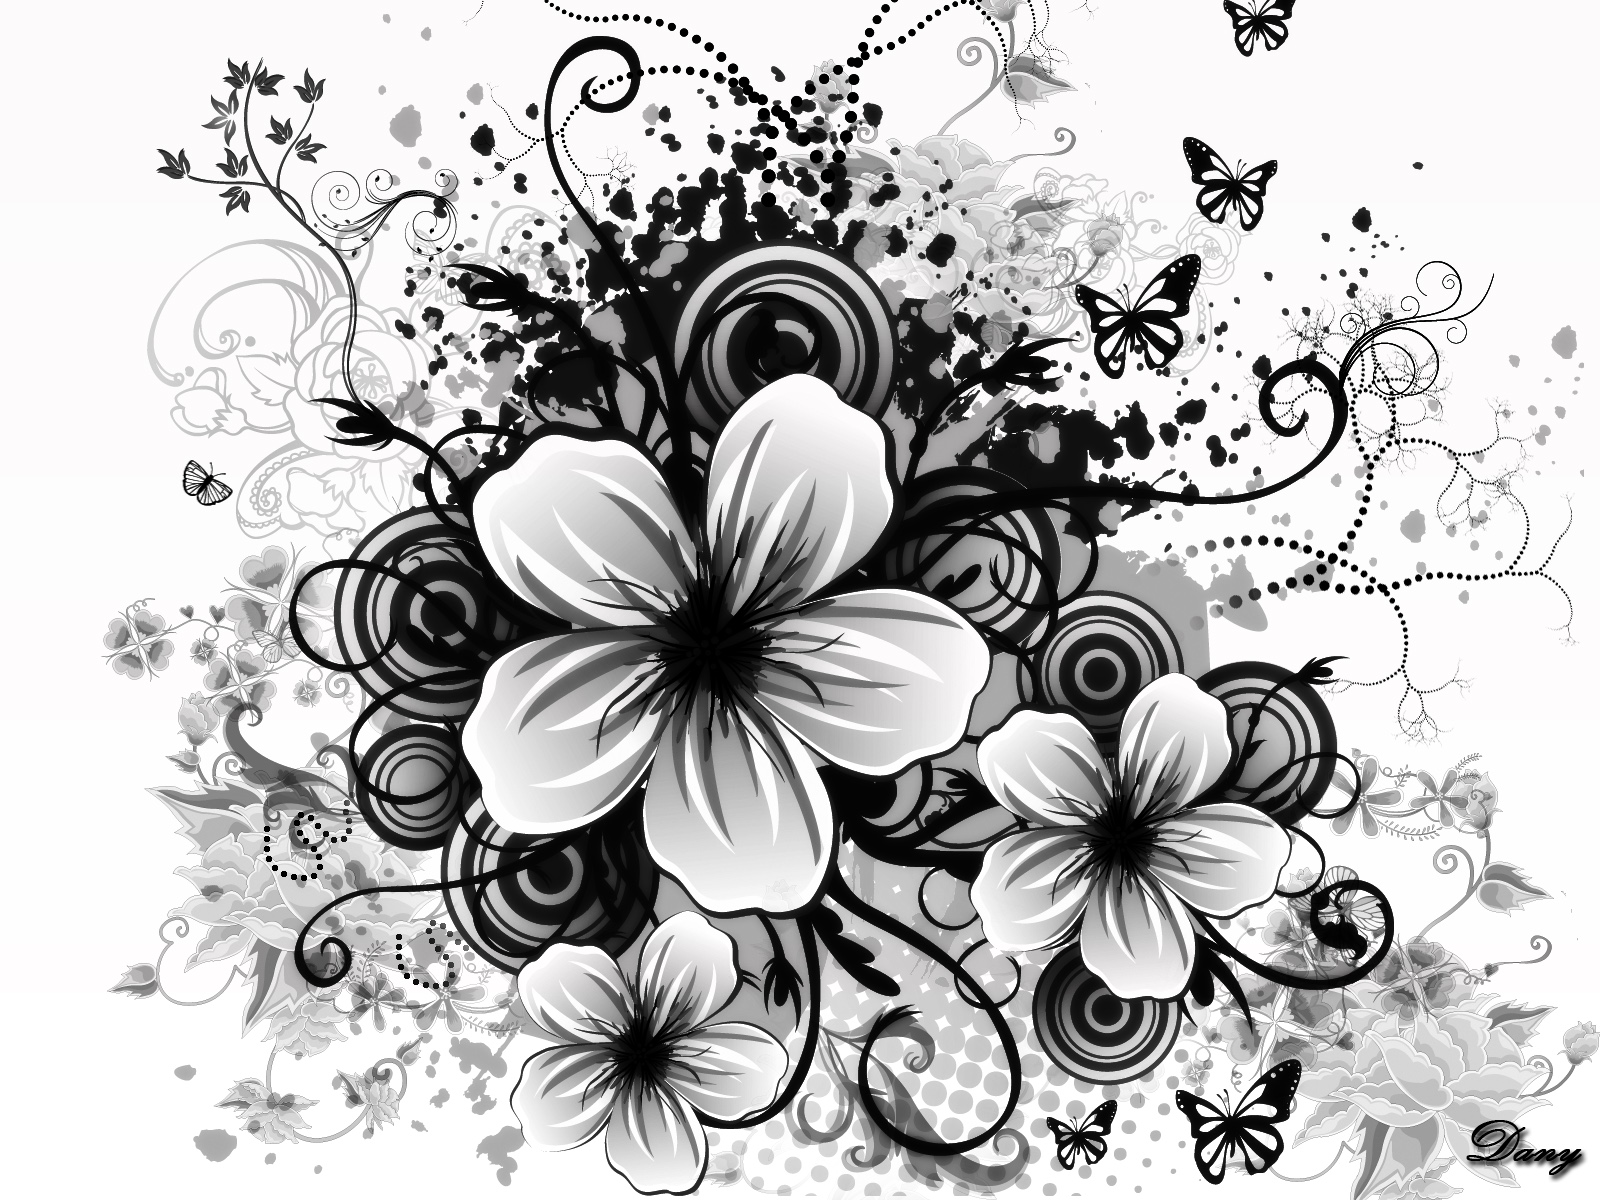 Black And White Flowers Wallpapers Hd Pixelstalknet